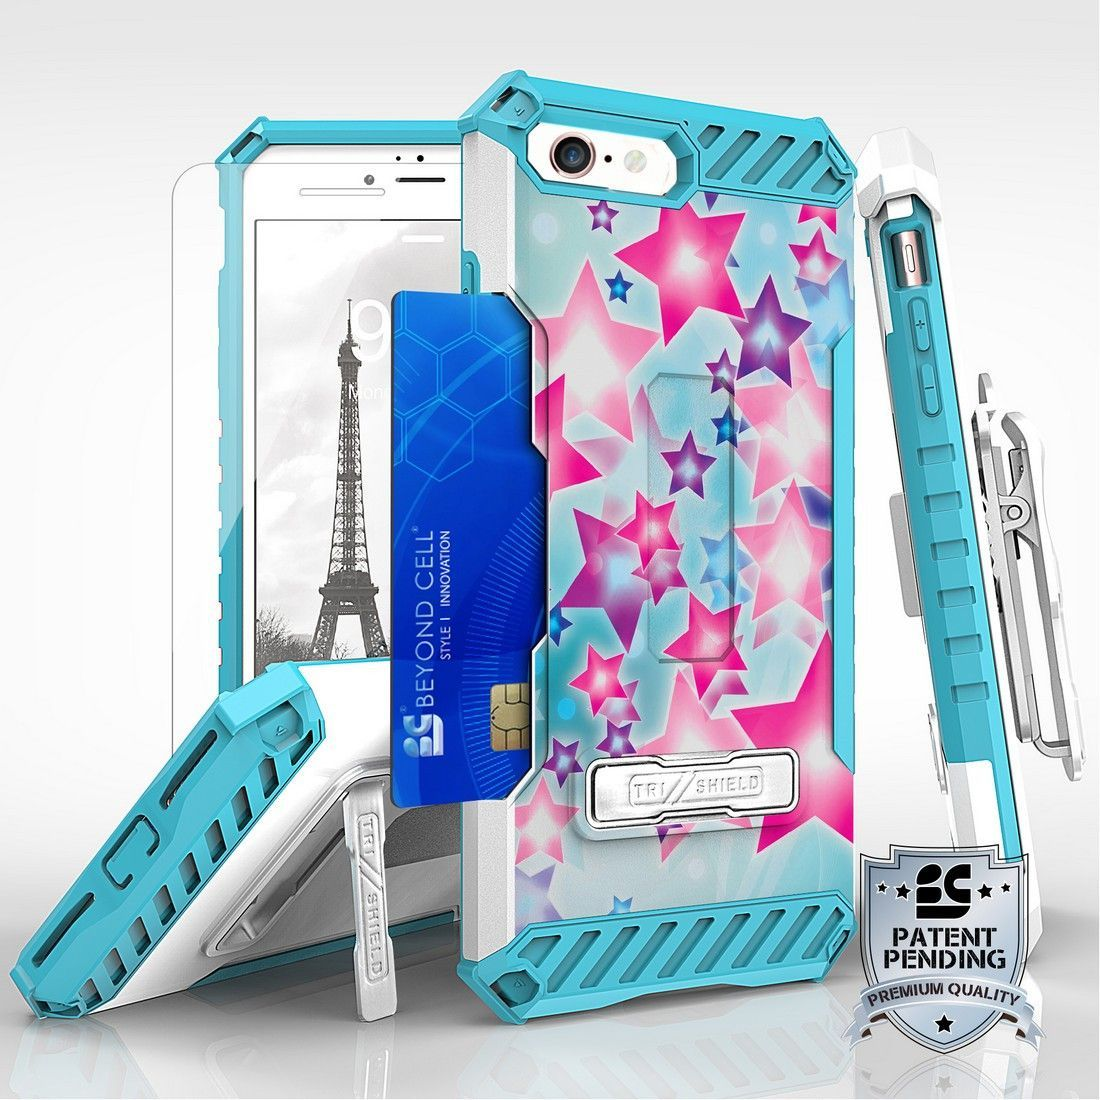 Tri Shield For Apple iPhone 7 Pink Stars on Blue, Belt Clip Holster, Tempered Glass